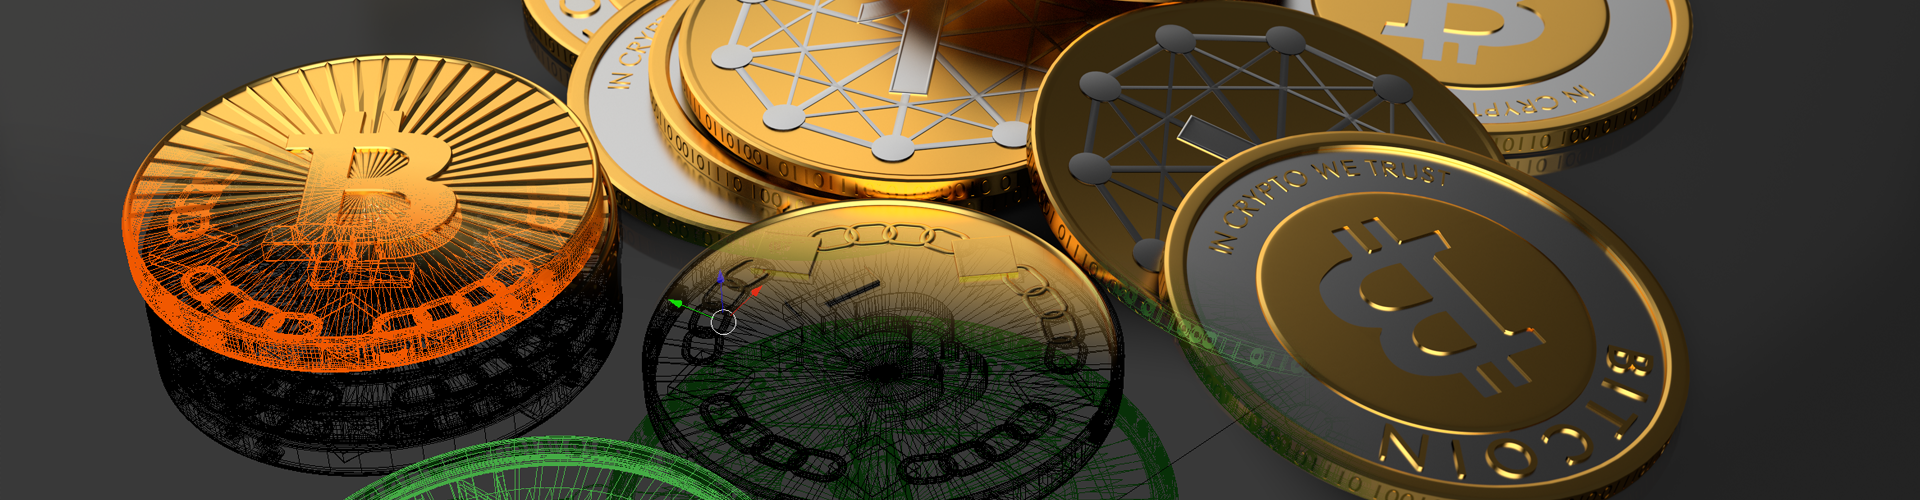 Virtual Money Image 1